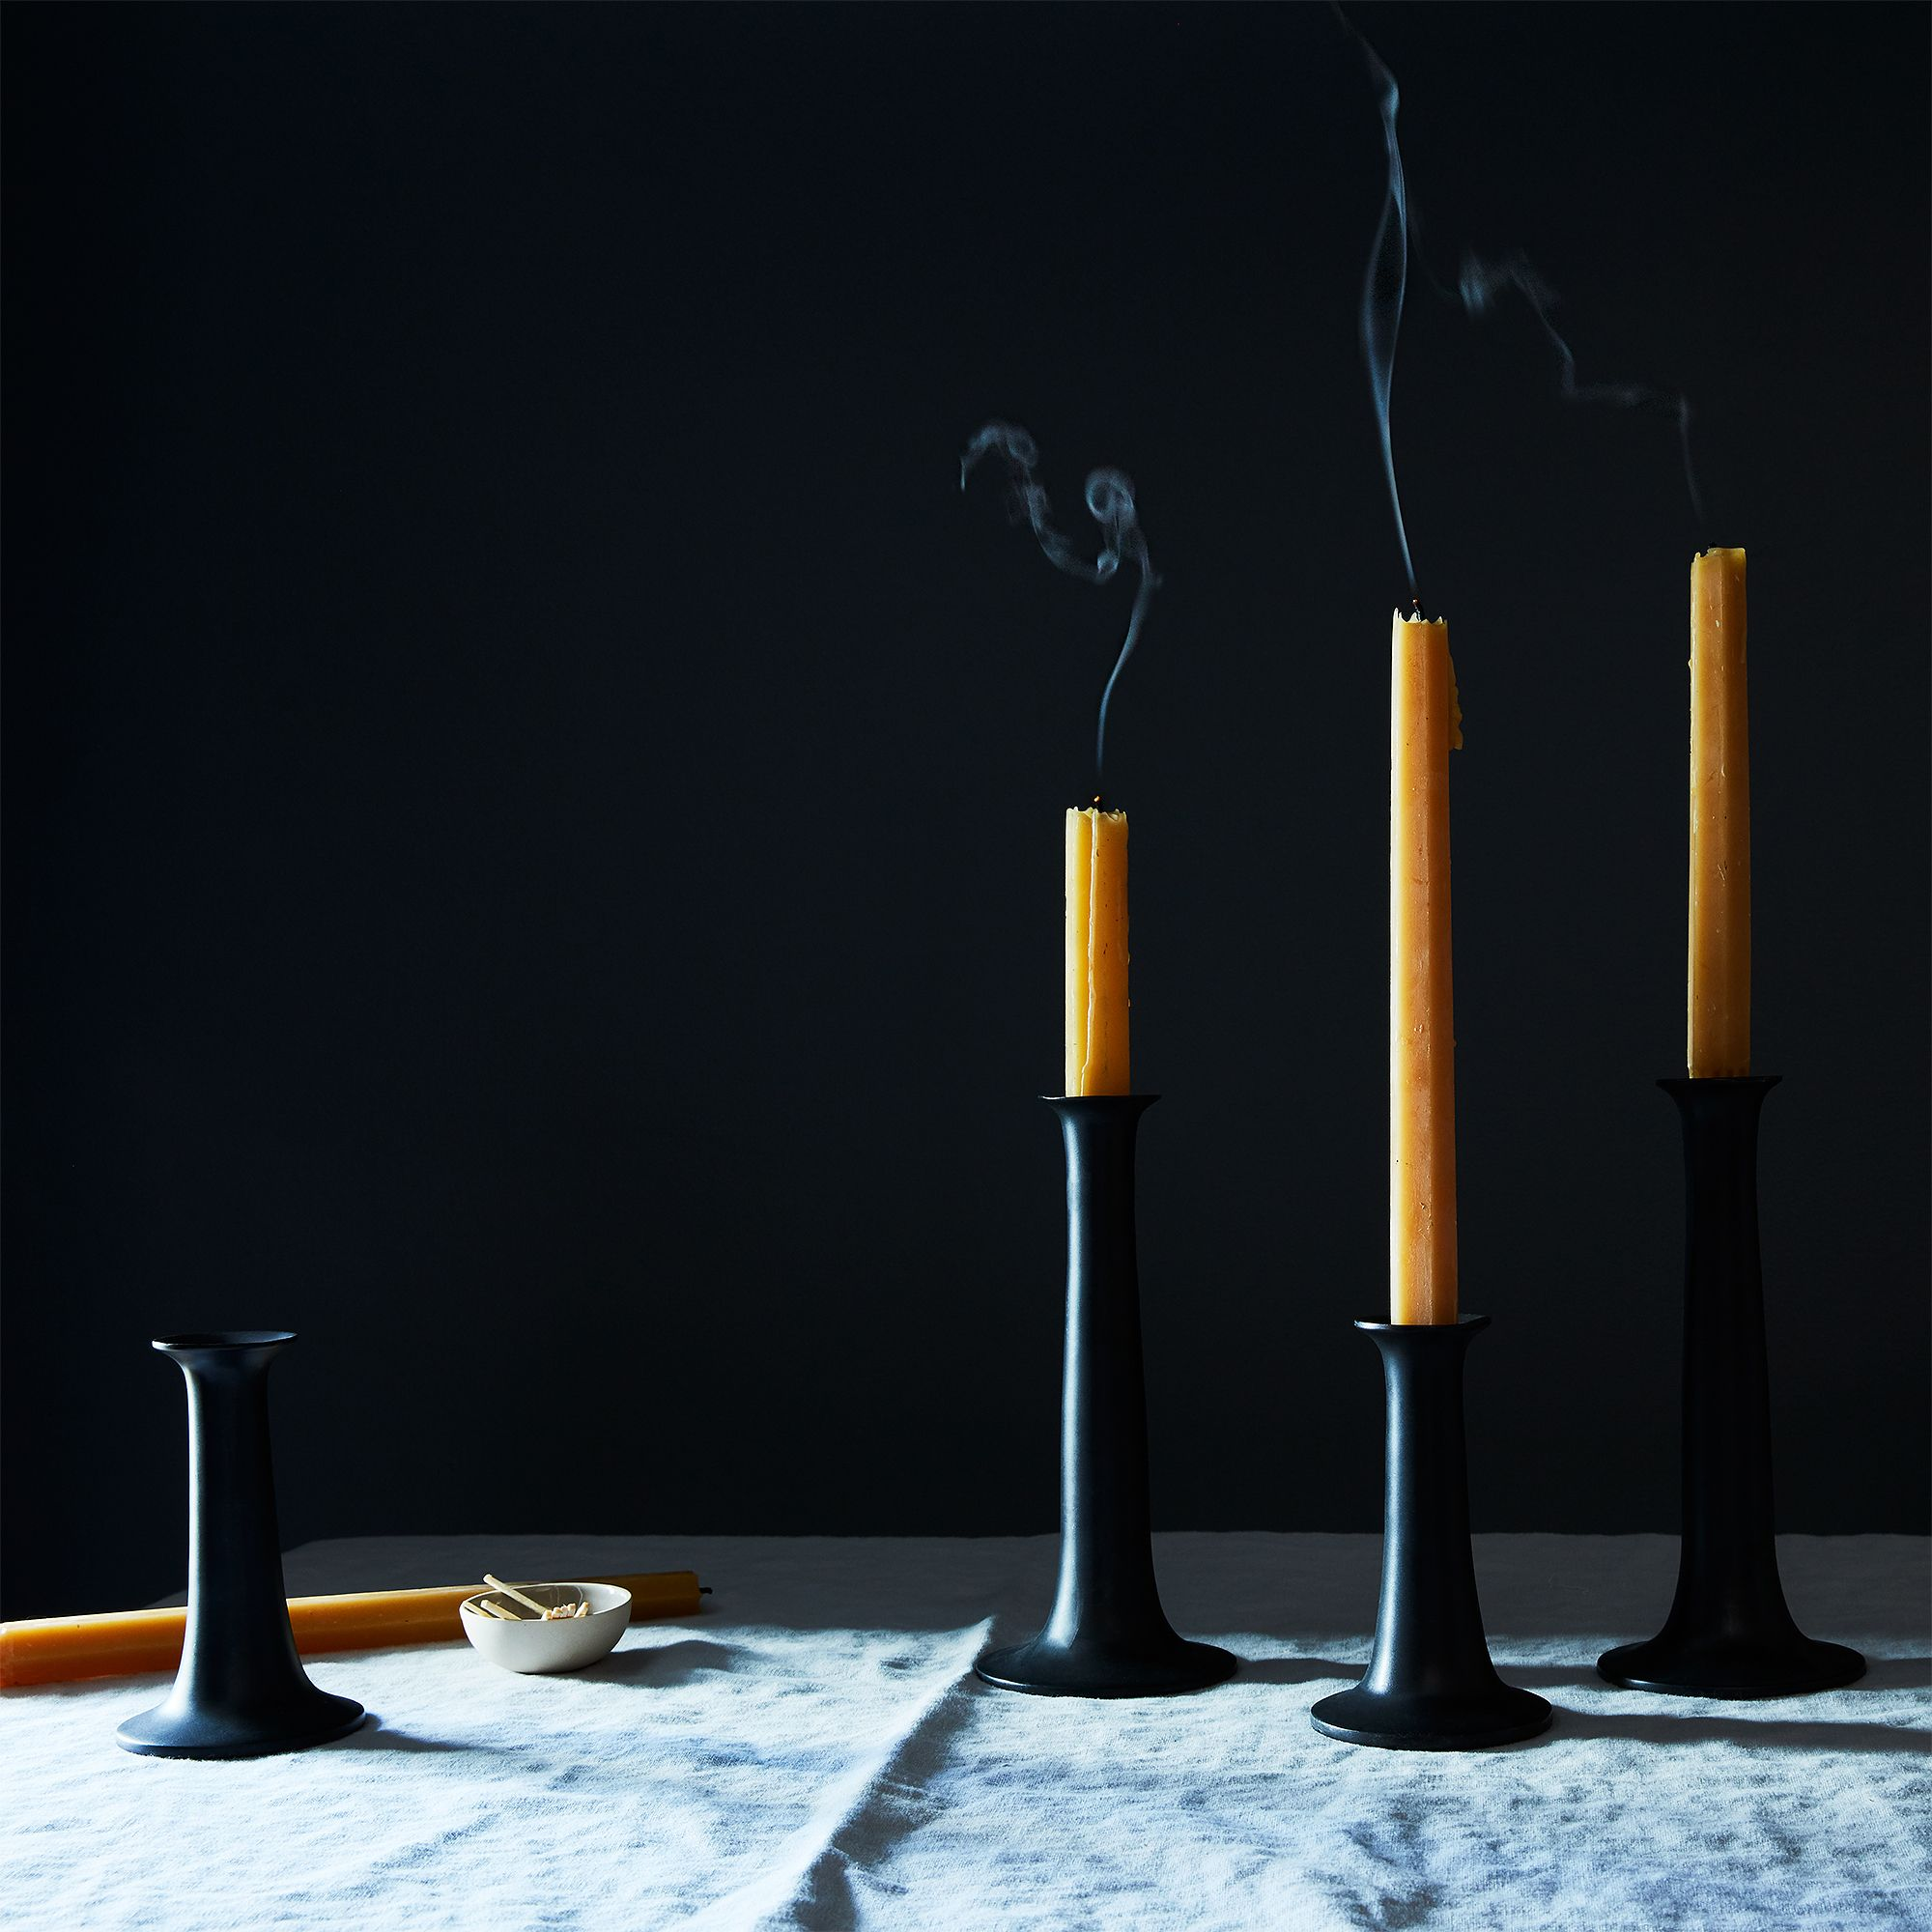 The Dinner-Changing Magic of Candlesticks